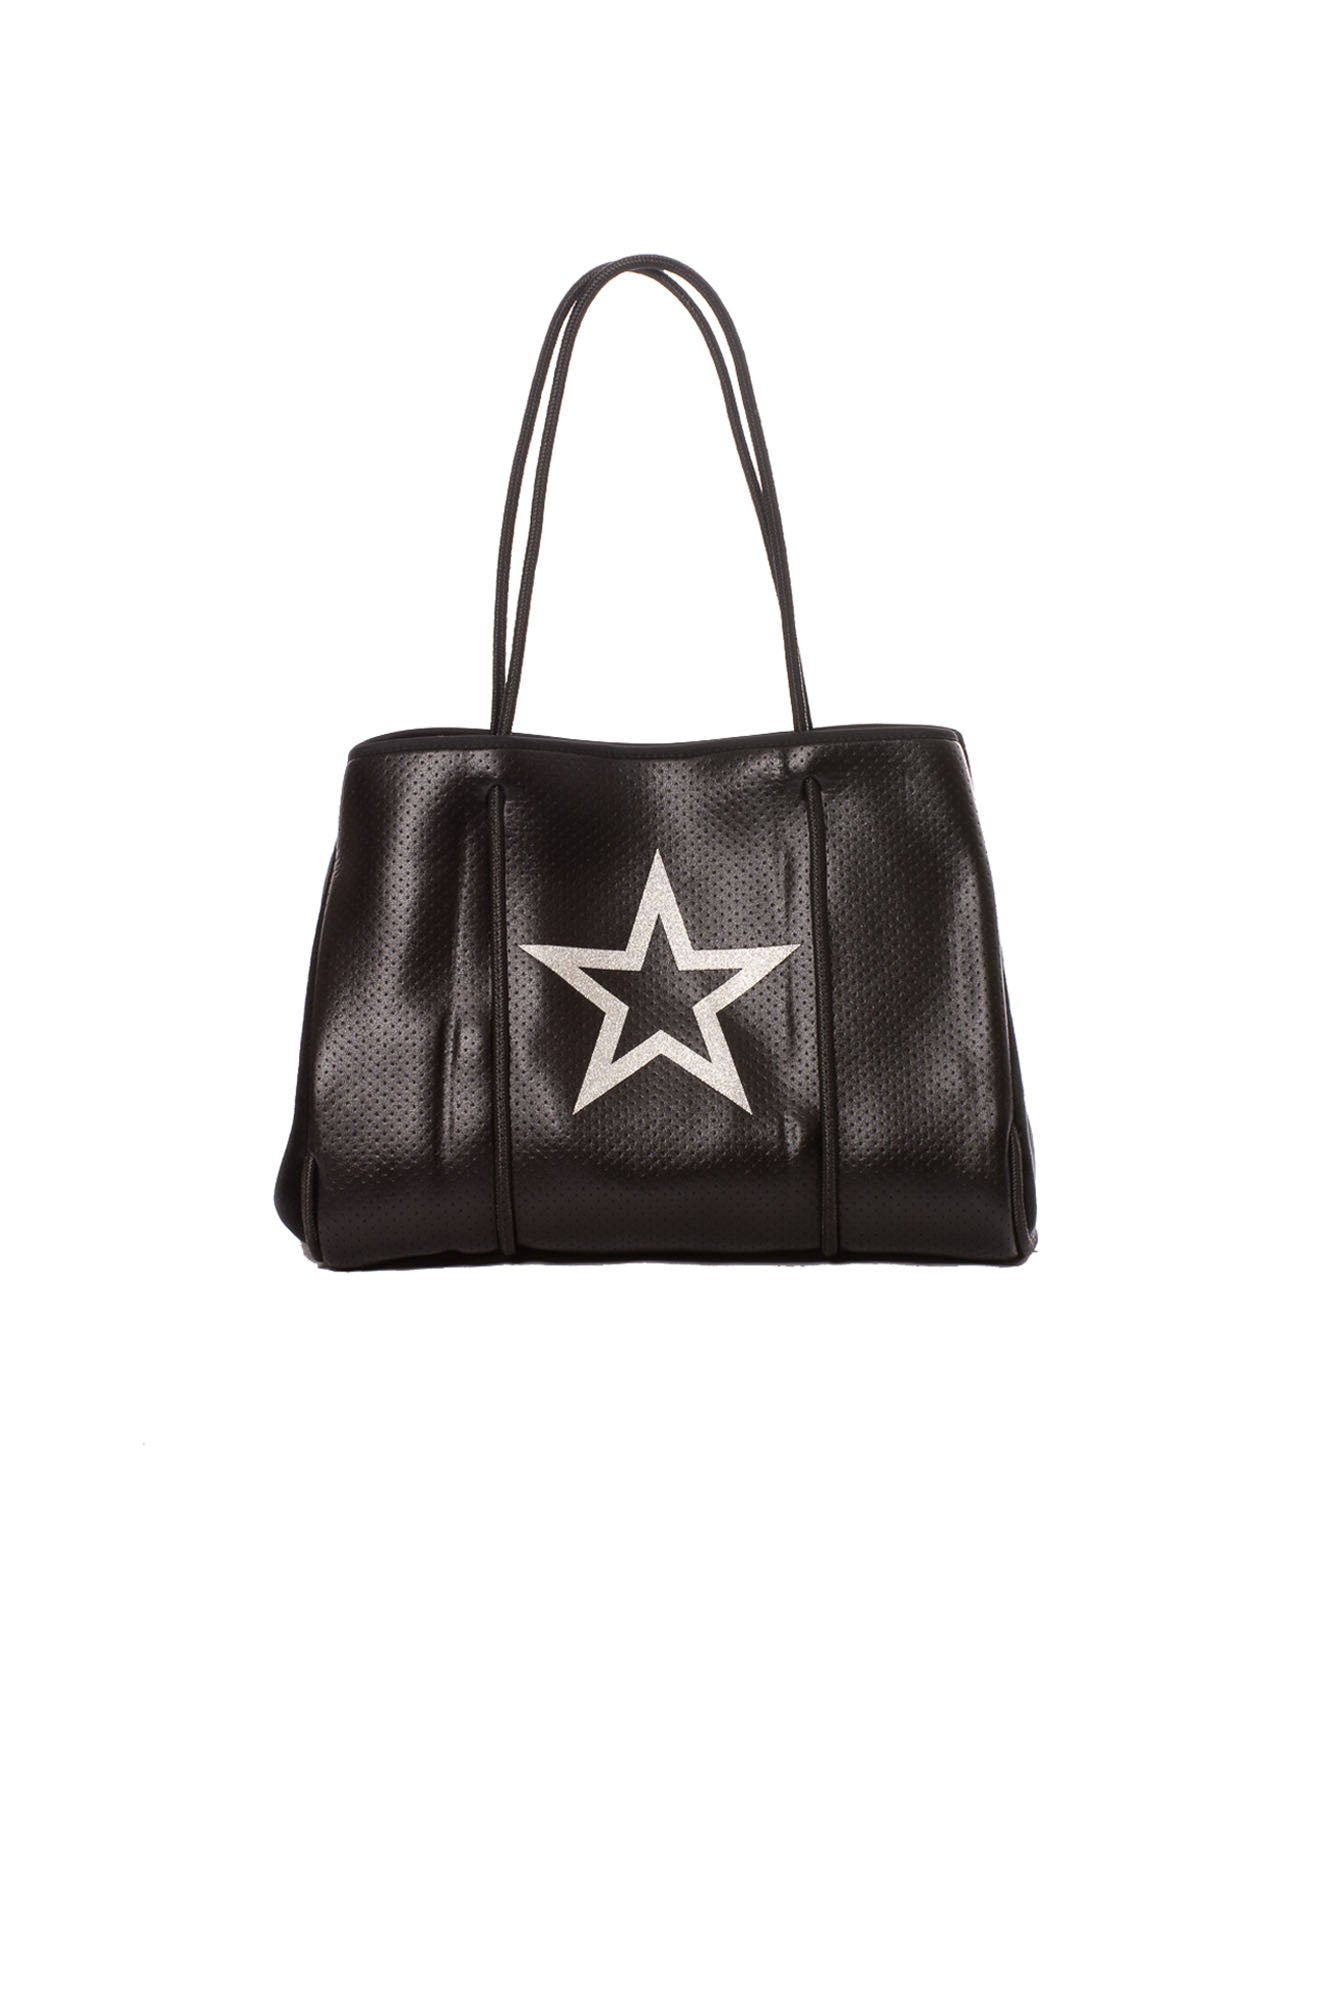 Haute Shore - Greyson Vegas Neoprene Tote Bag w/Zipper Wristlet Inside (Vegas, Black w/White Star)